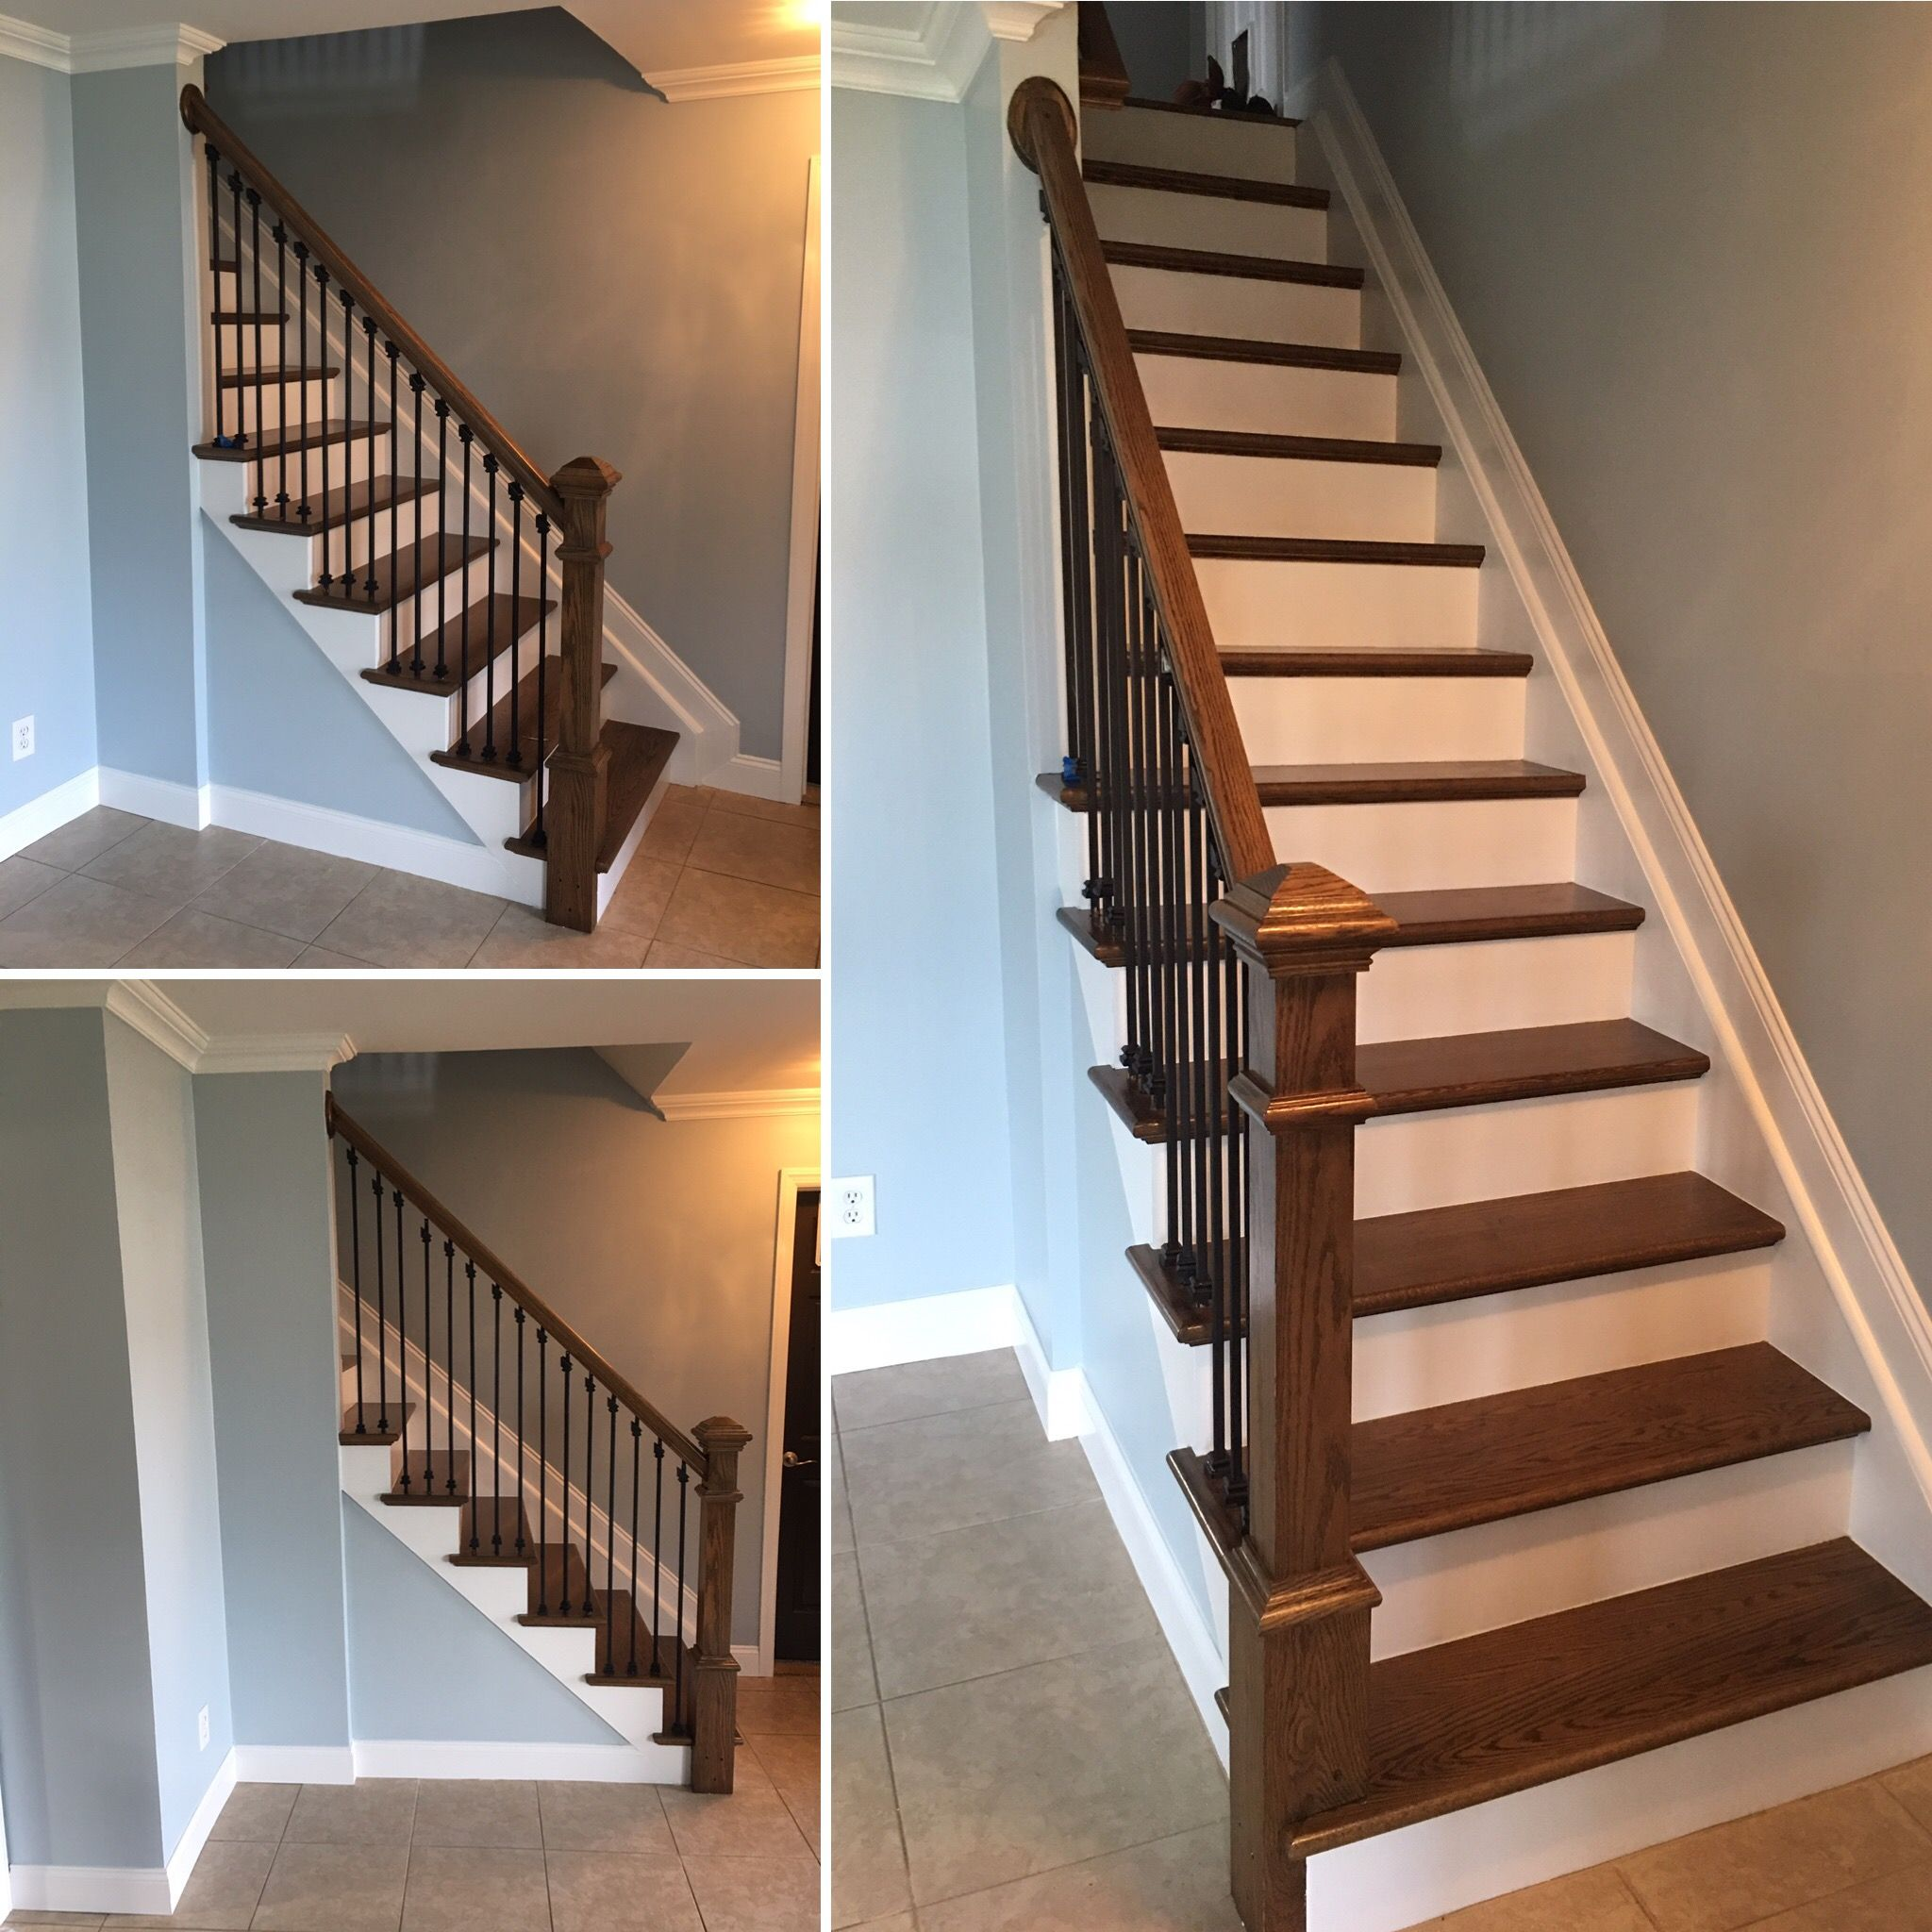 Stairs- Stain on the steps and railing is a mix between Classic Gray and Provincial; Walls - Benjamin Moore (2131-60) Silver Gray; Trim- Regal Select White Semi gloss